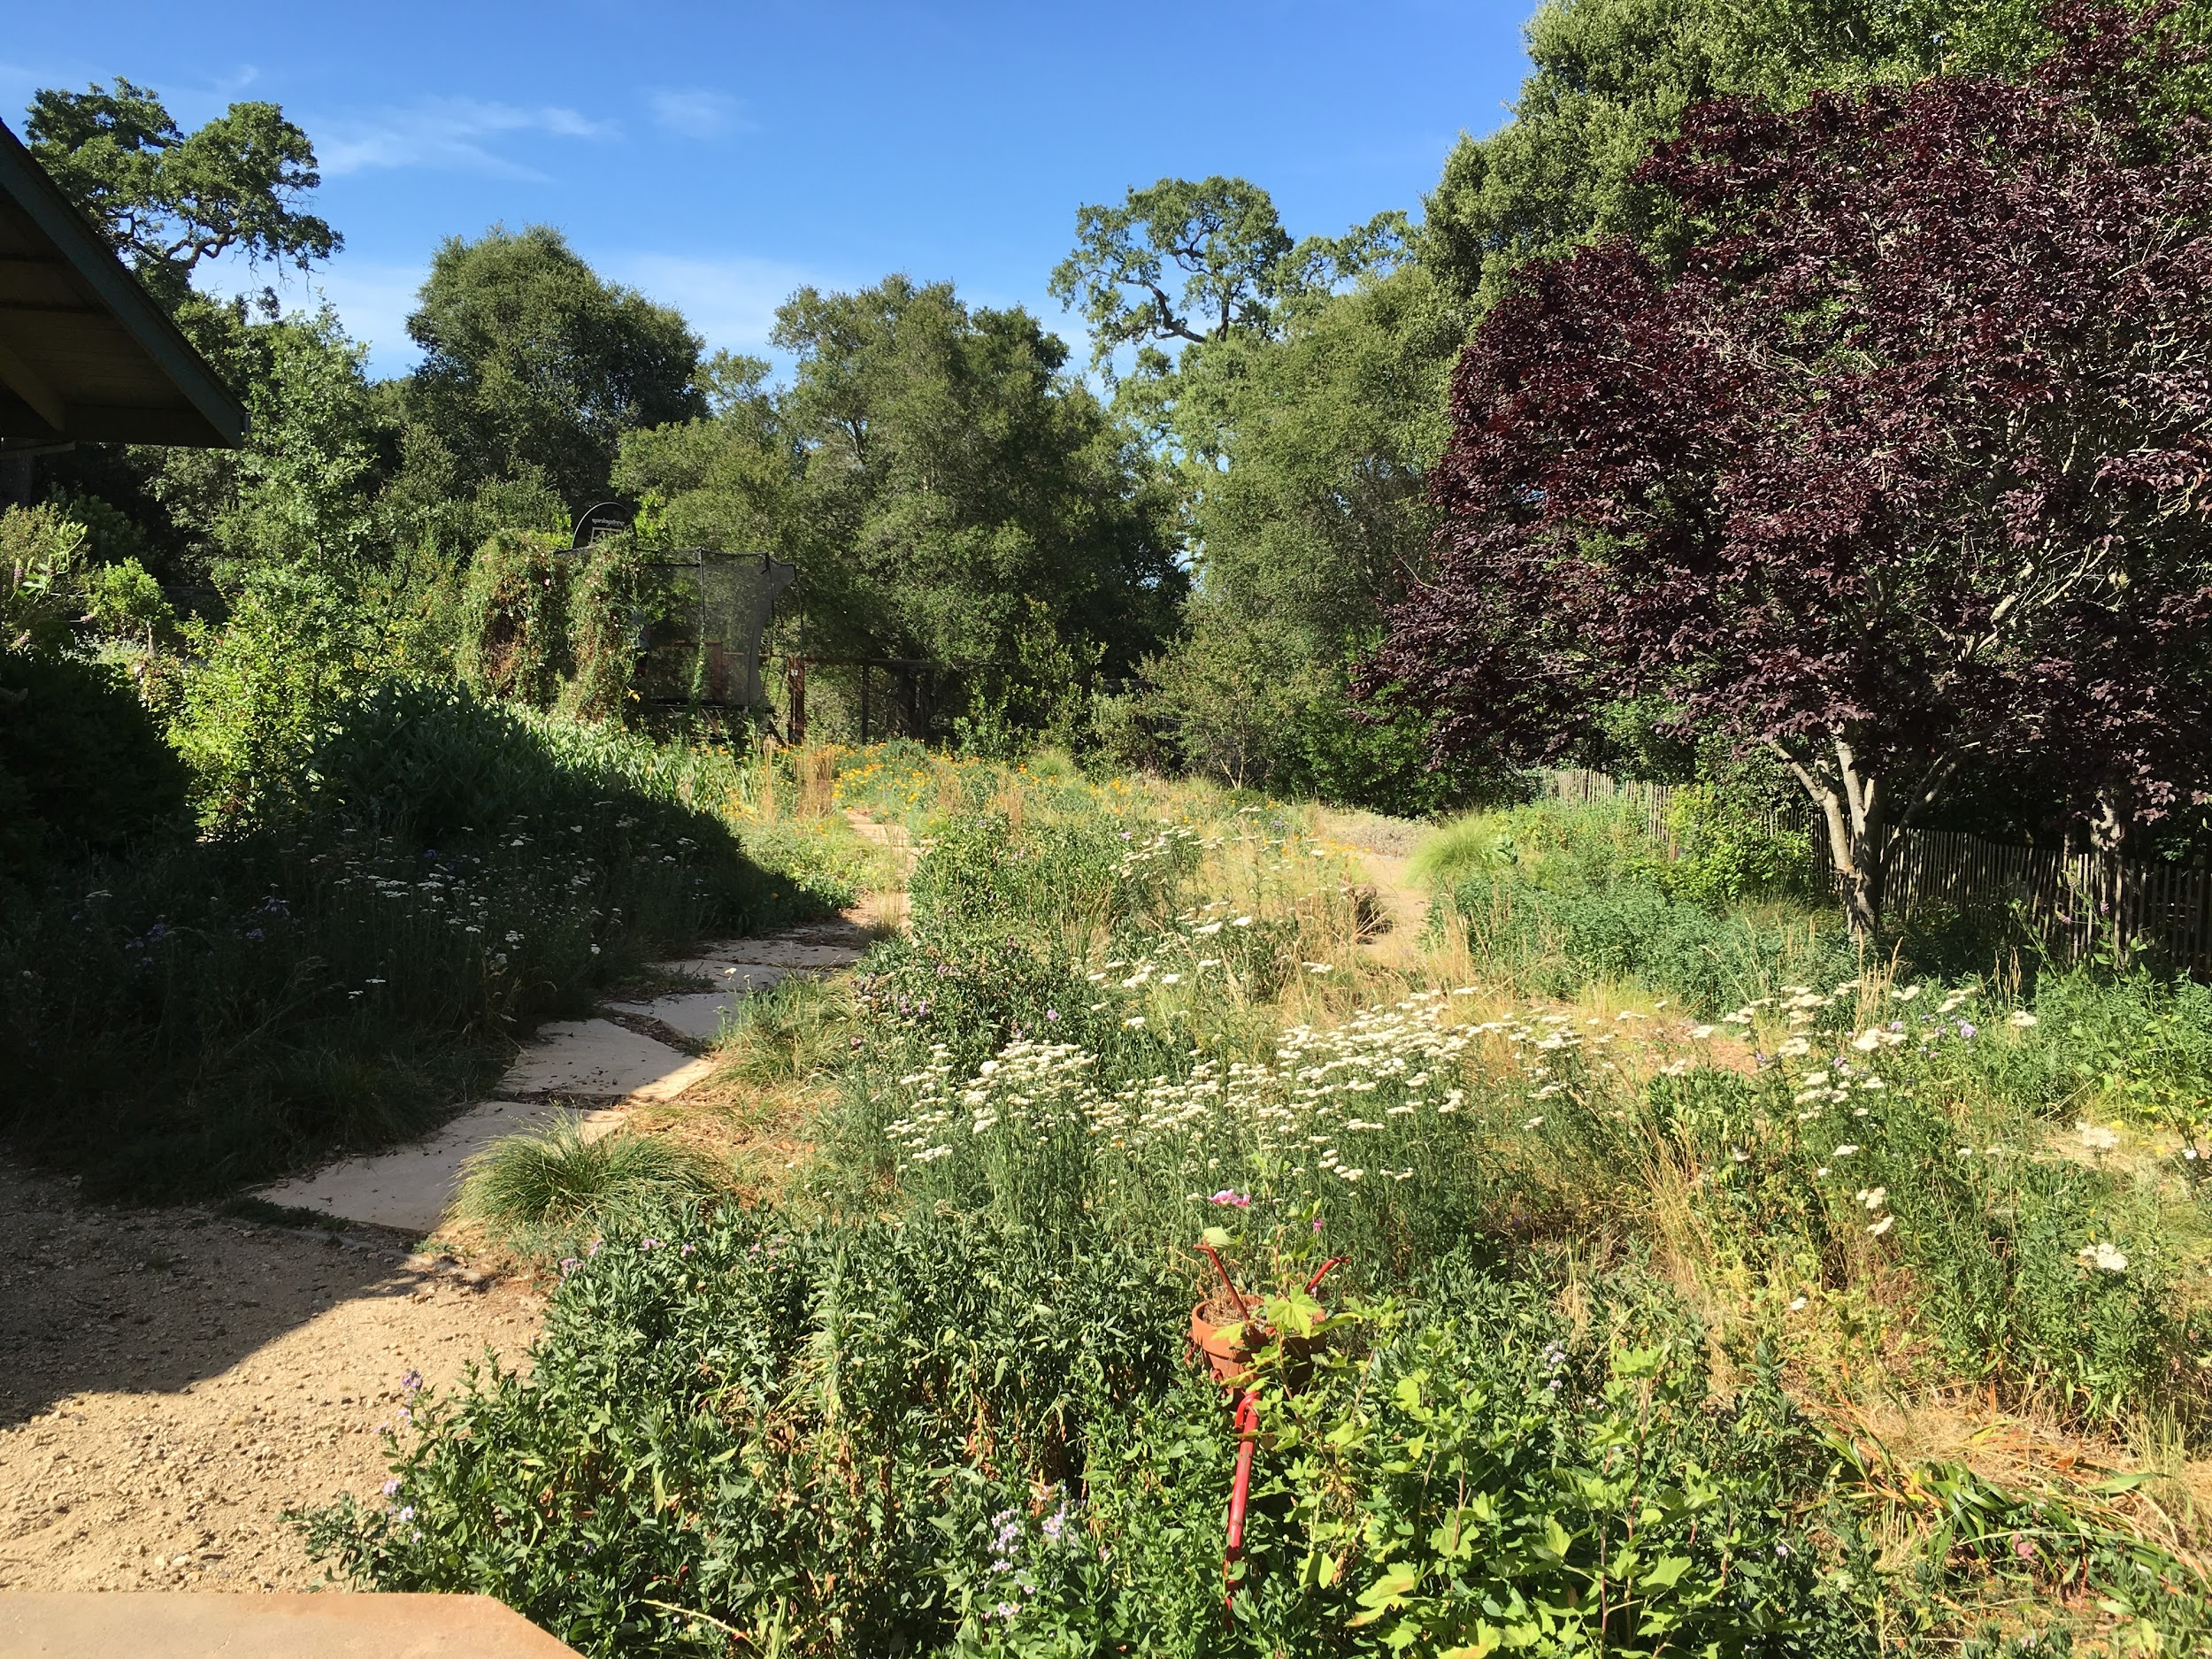 Native plant meadow in June